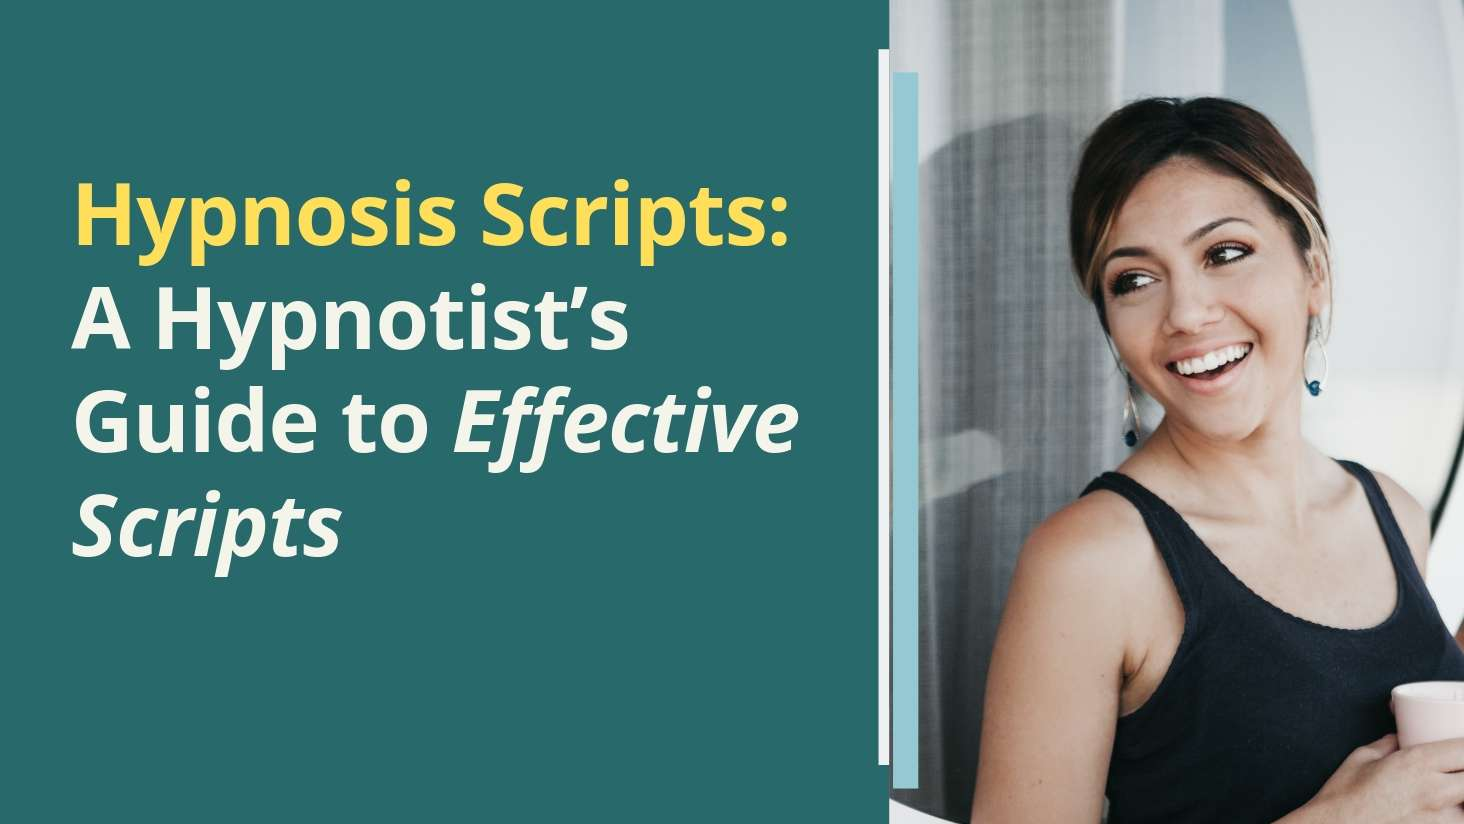 Hypnosis-Scripts-A-Hypnotists-Guide-to-Effective-Scripts